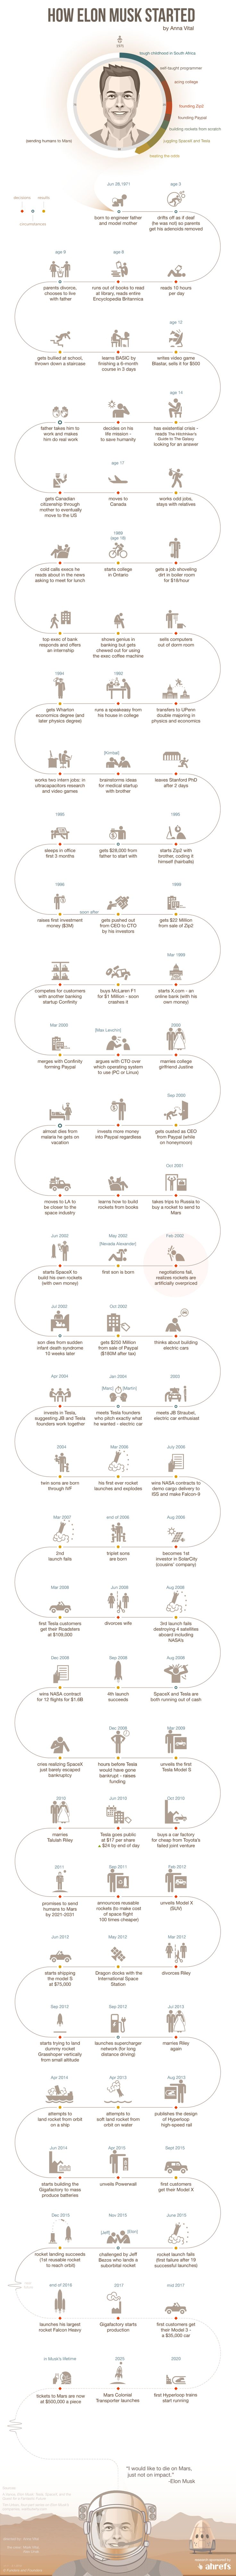 Elon Musk's biography infographic